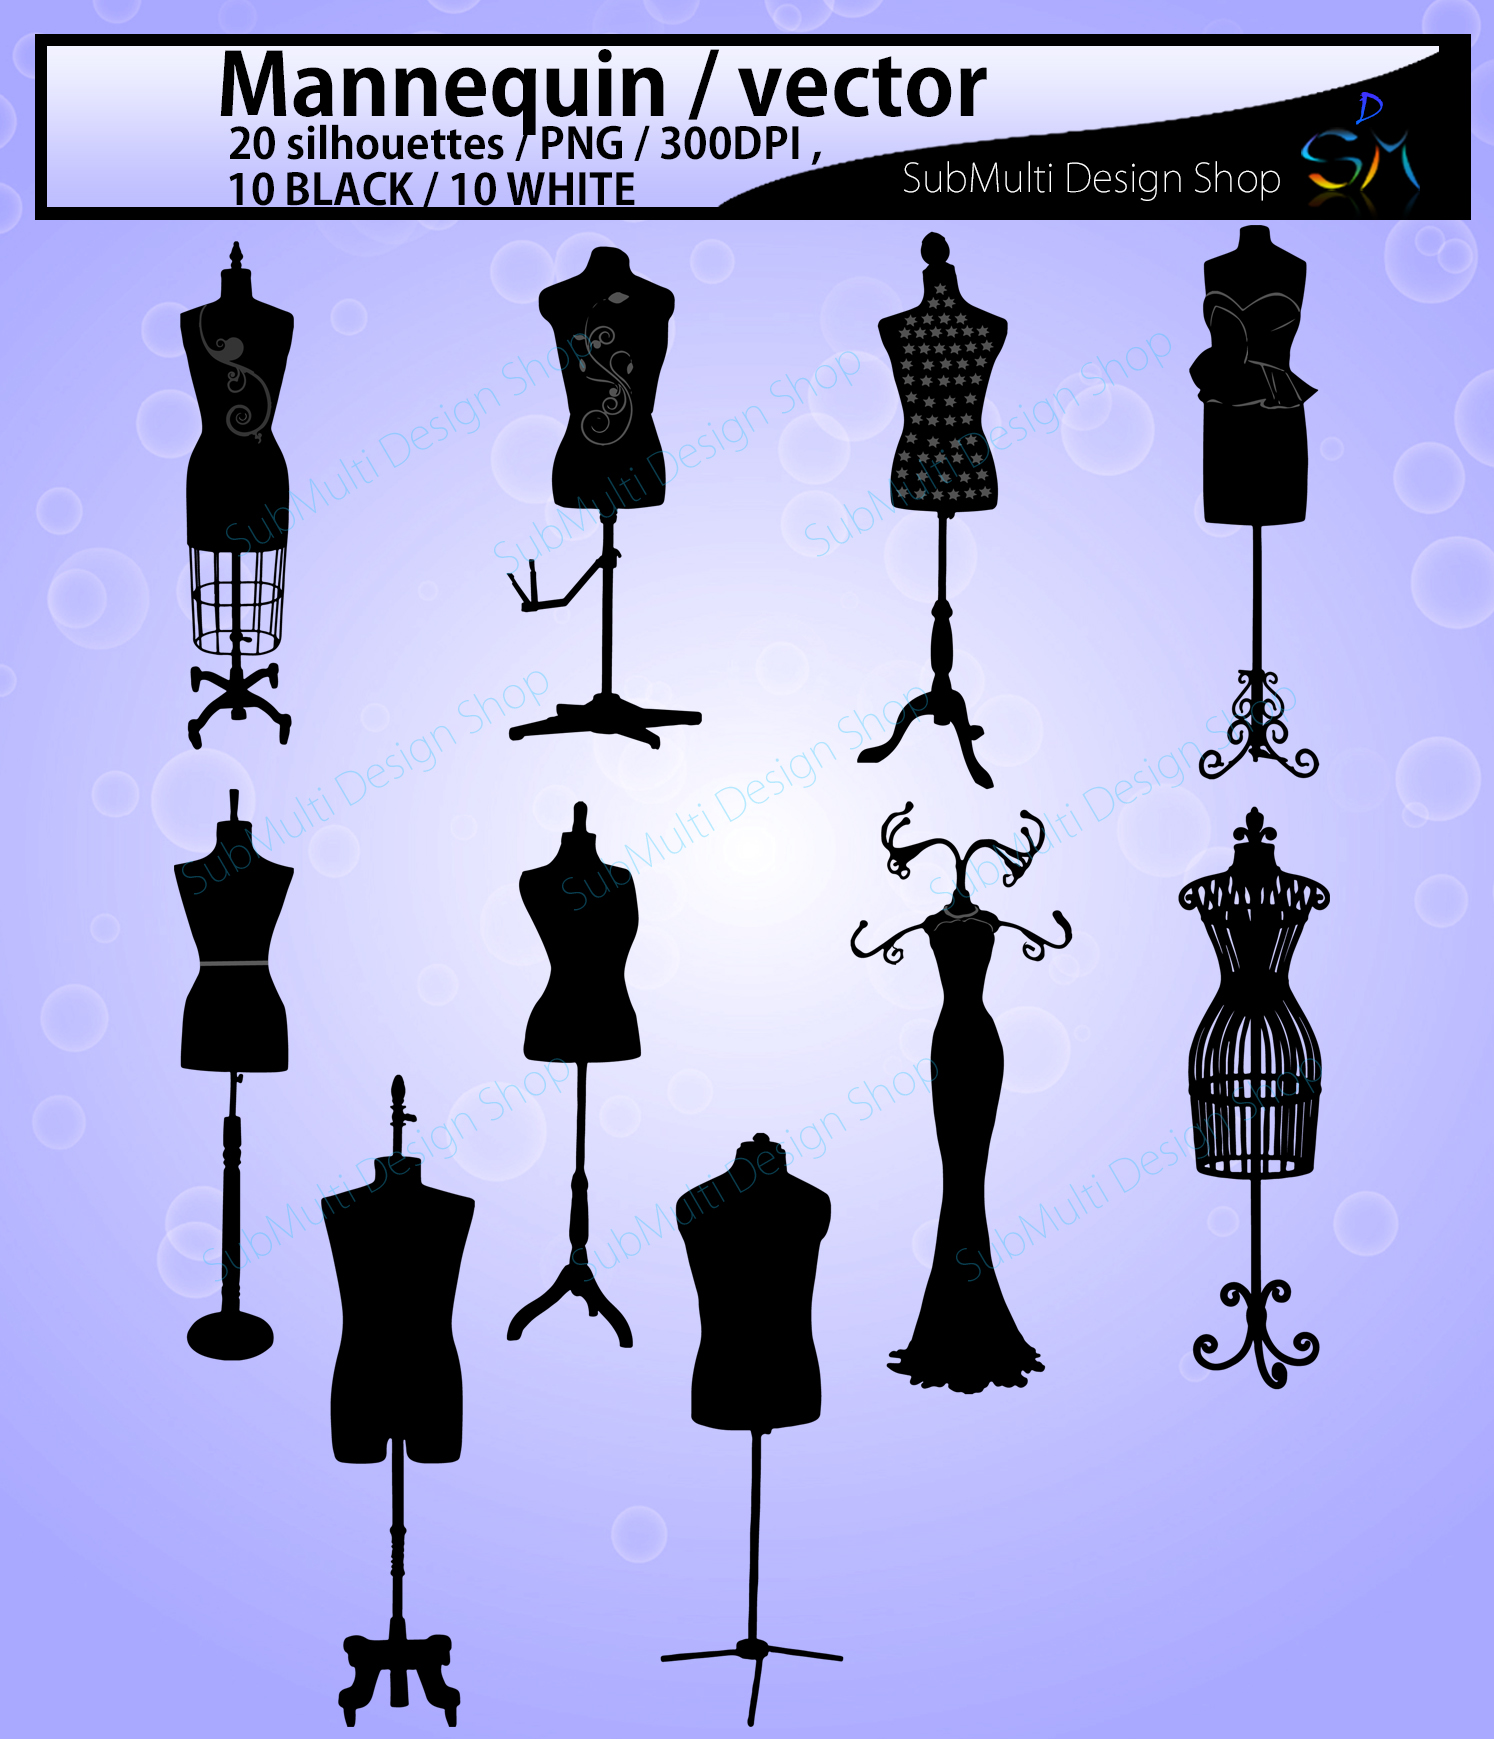 Mannequin svg / mannequin silhouette / EPS / SVG files / mannequin clipart / mannequin craft file / PNG /High Quality / 10B + 10w example image 2